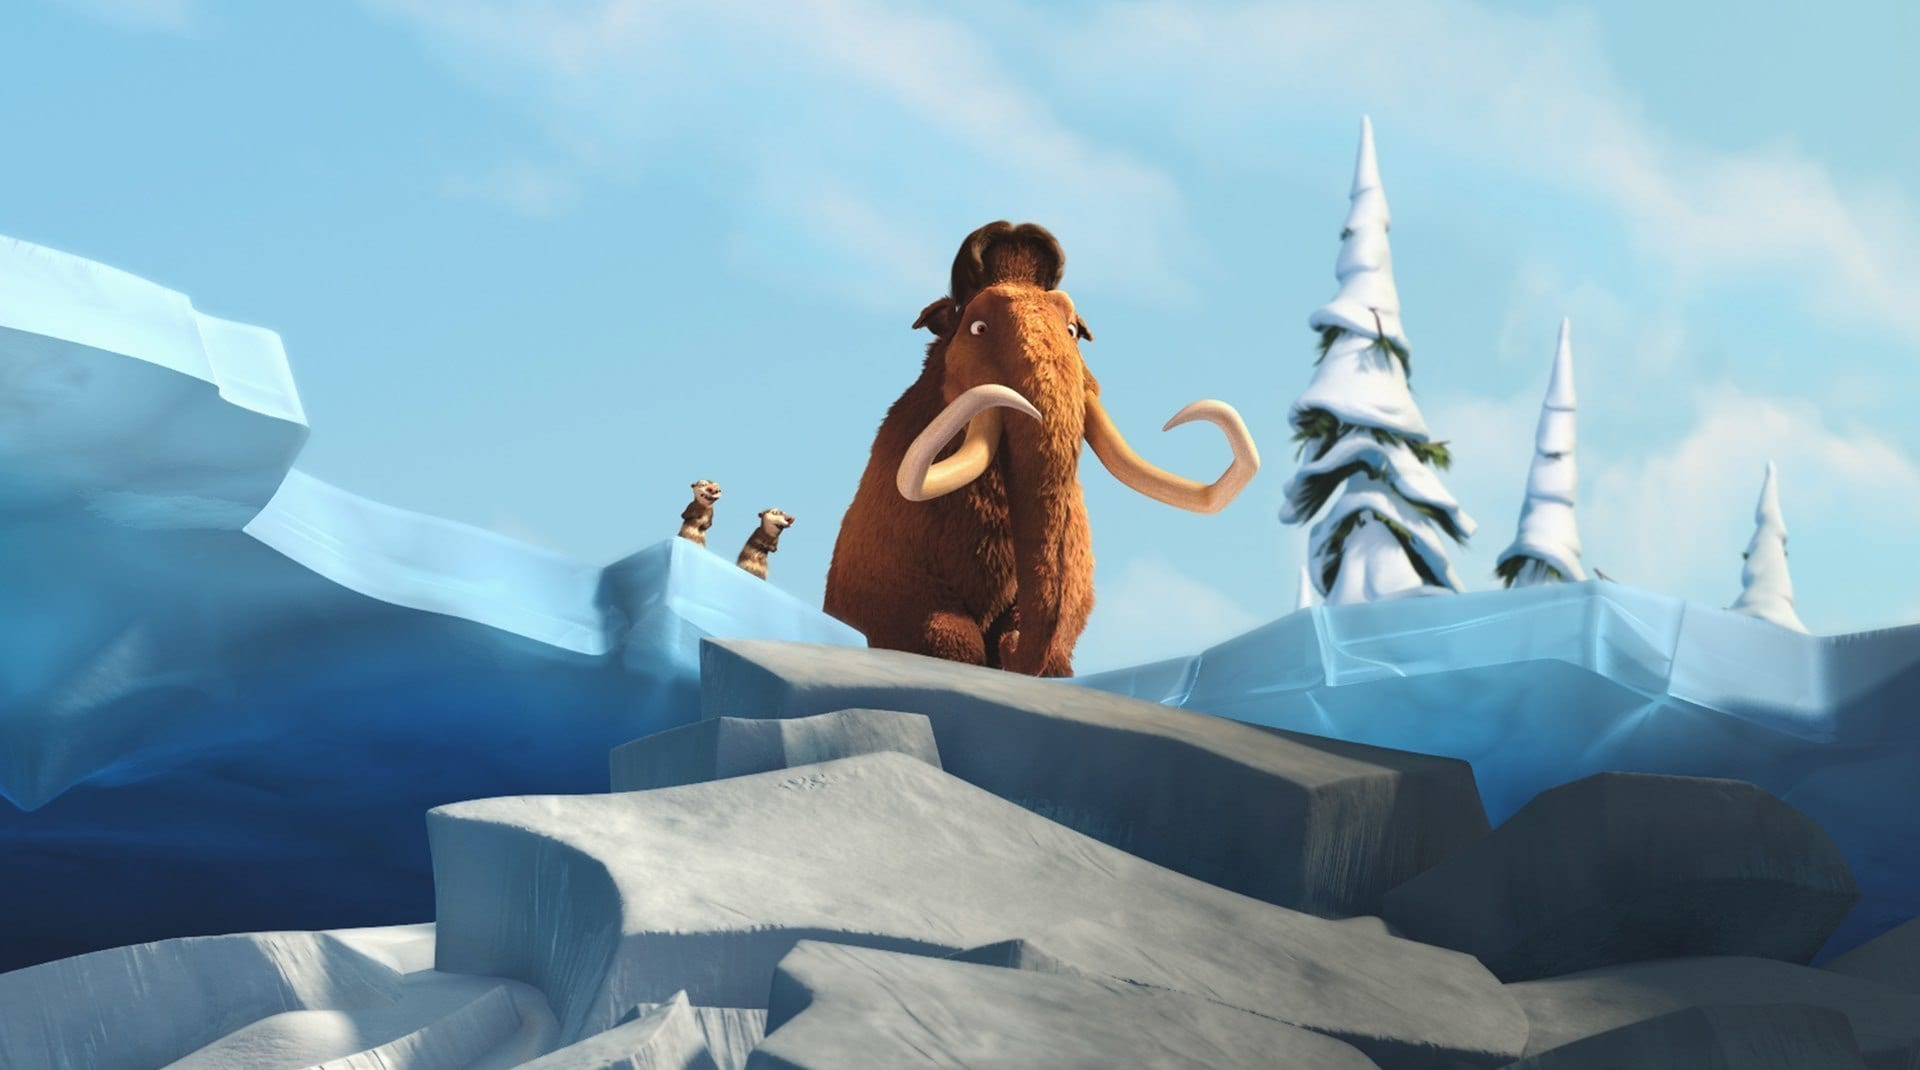 A still from Ice Age Dawn of the Dinosaurs